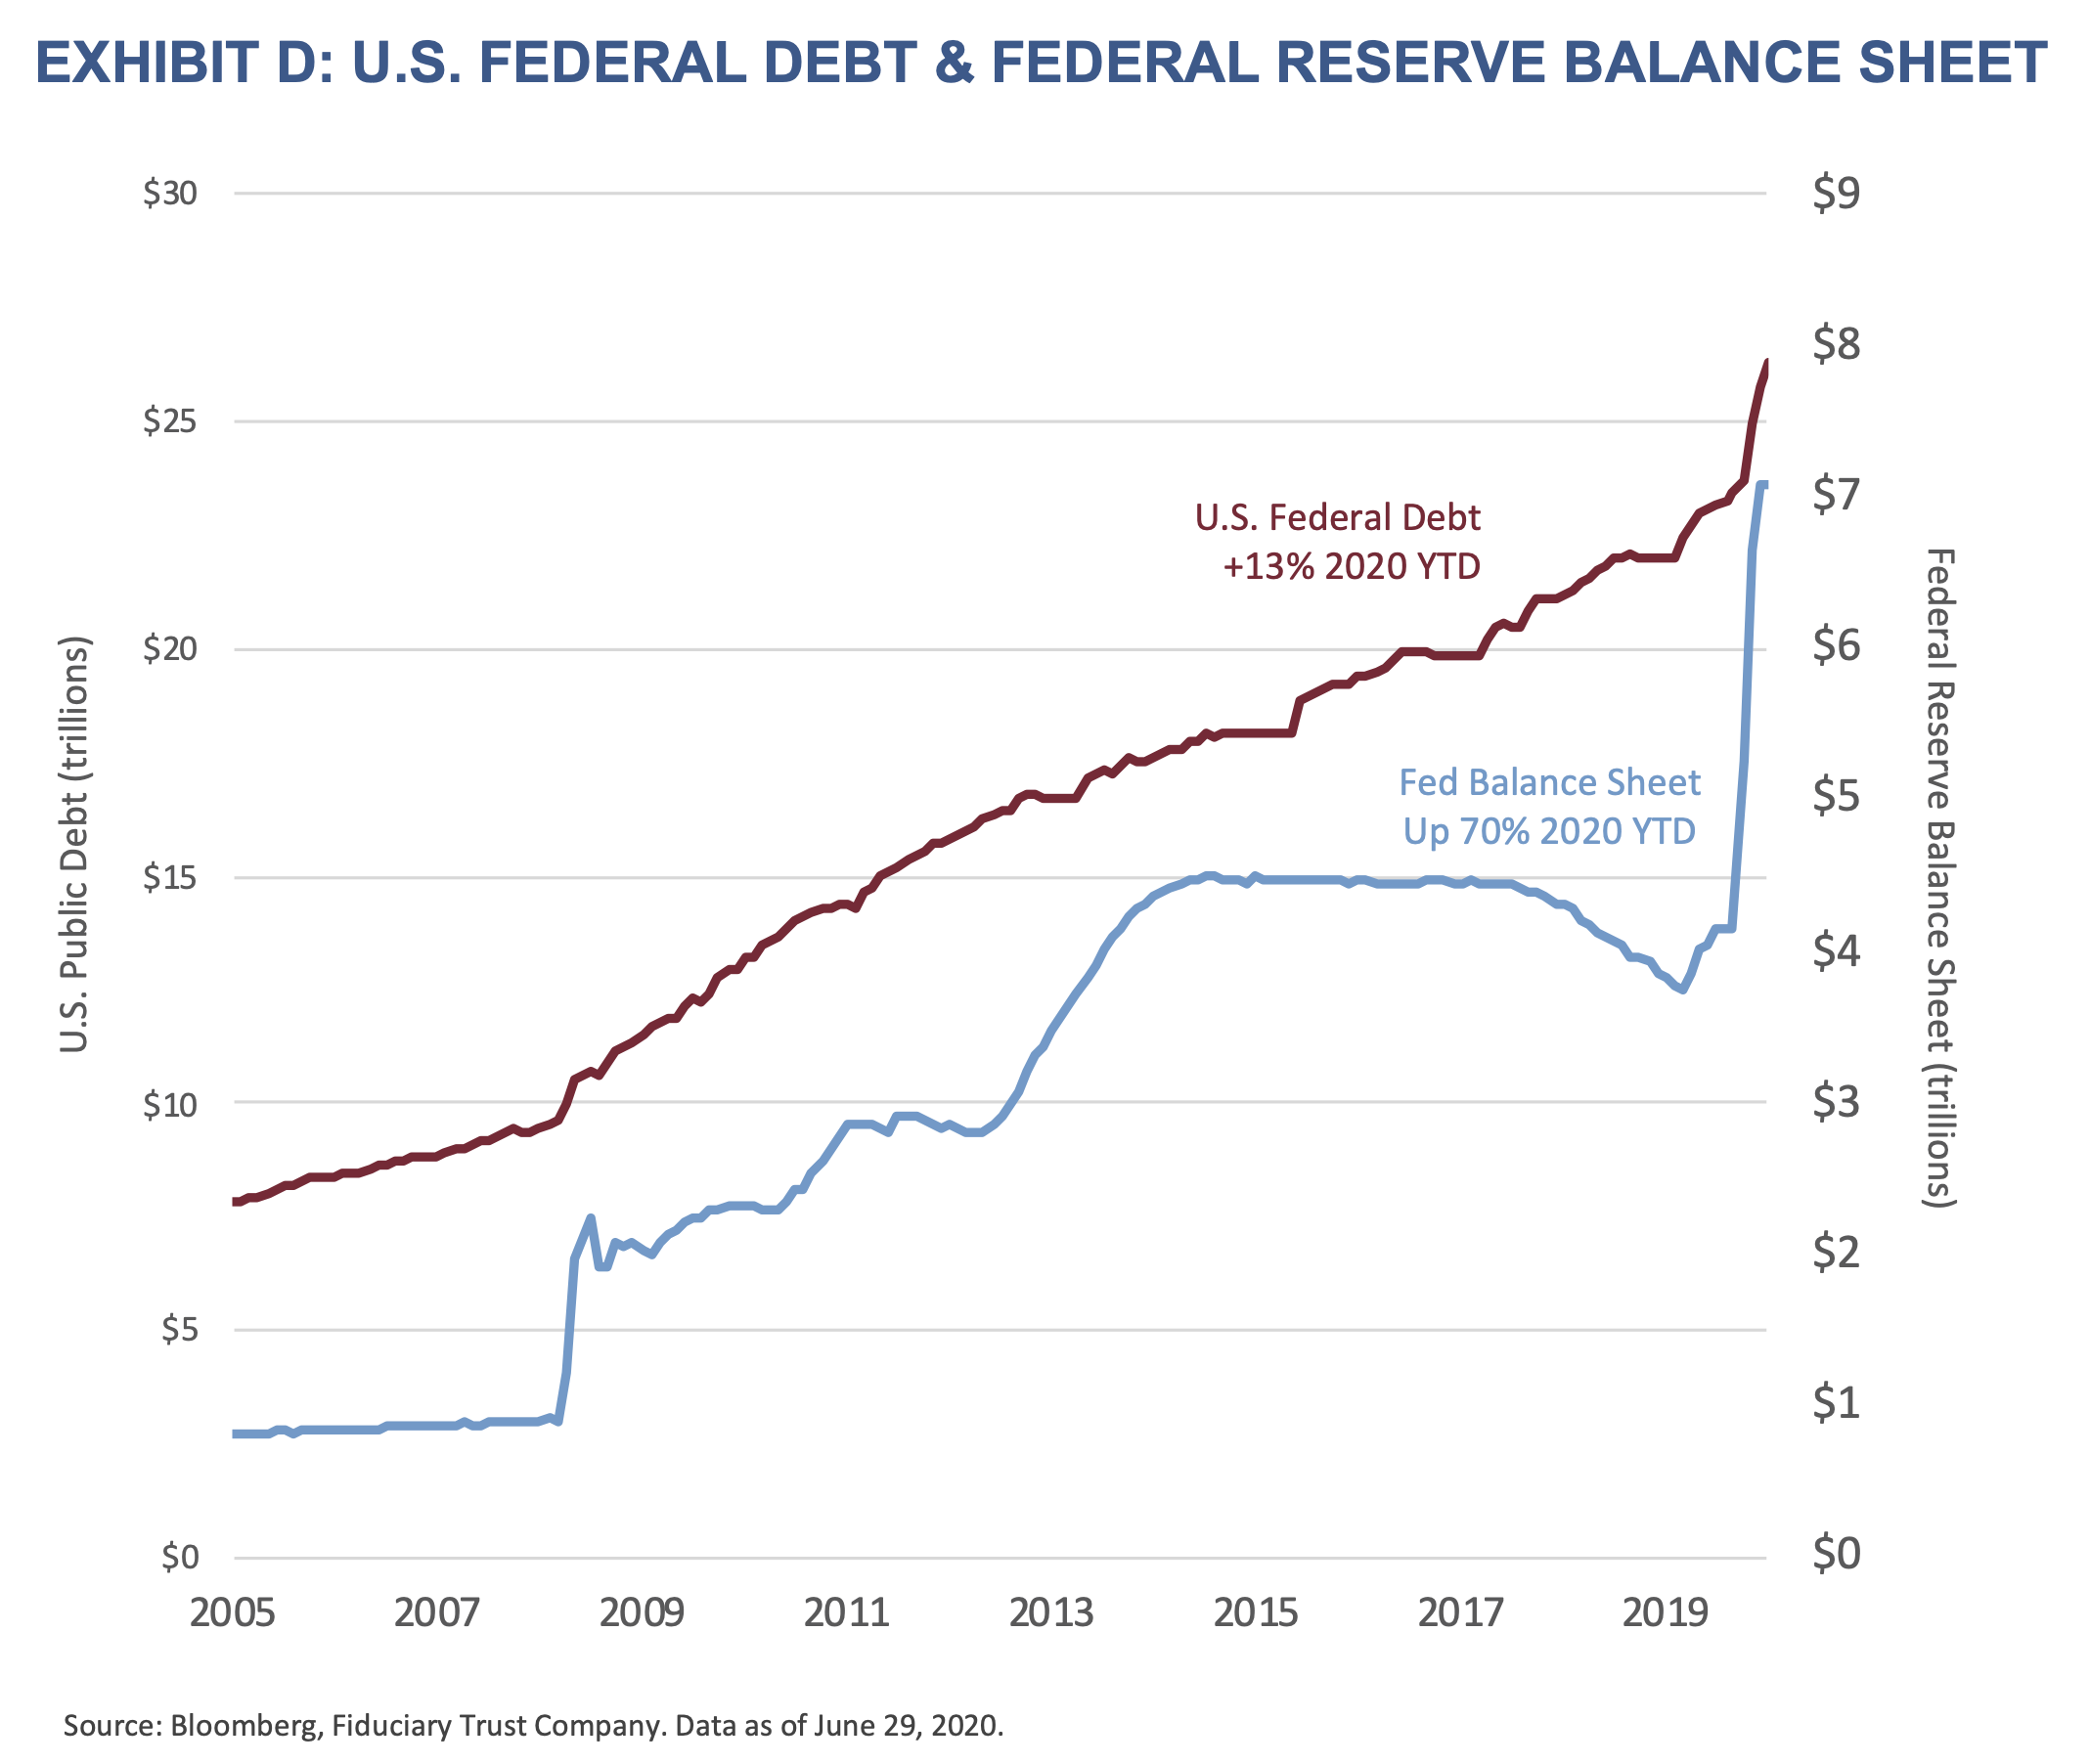 Exhibit D: U.S. Federal Reserve Debt and Federal Reserve Balance Sheet